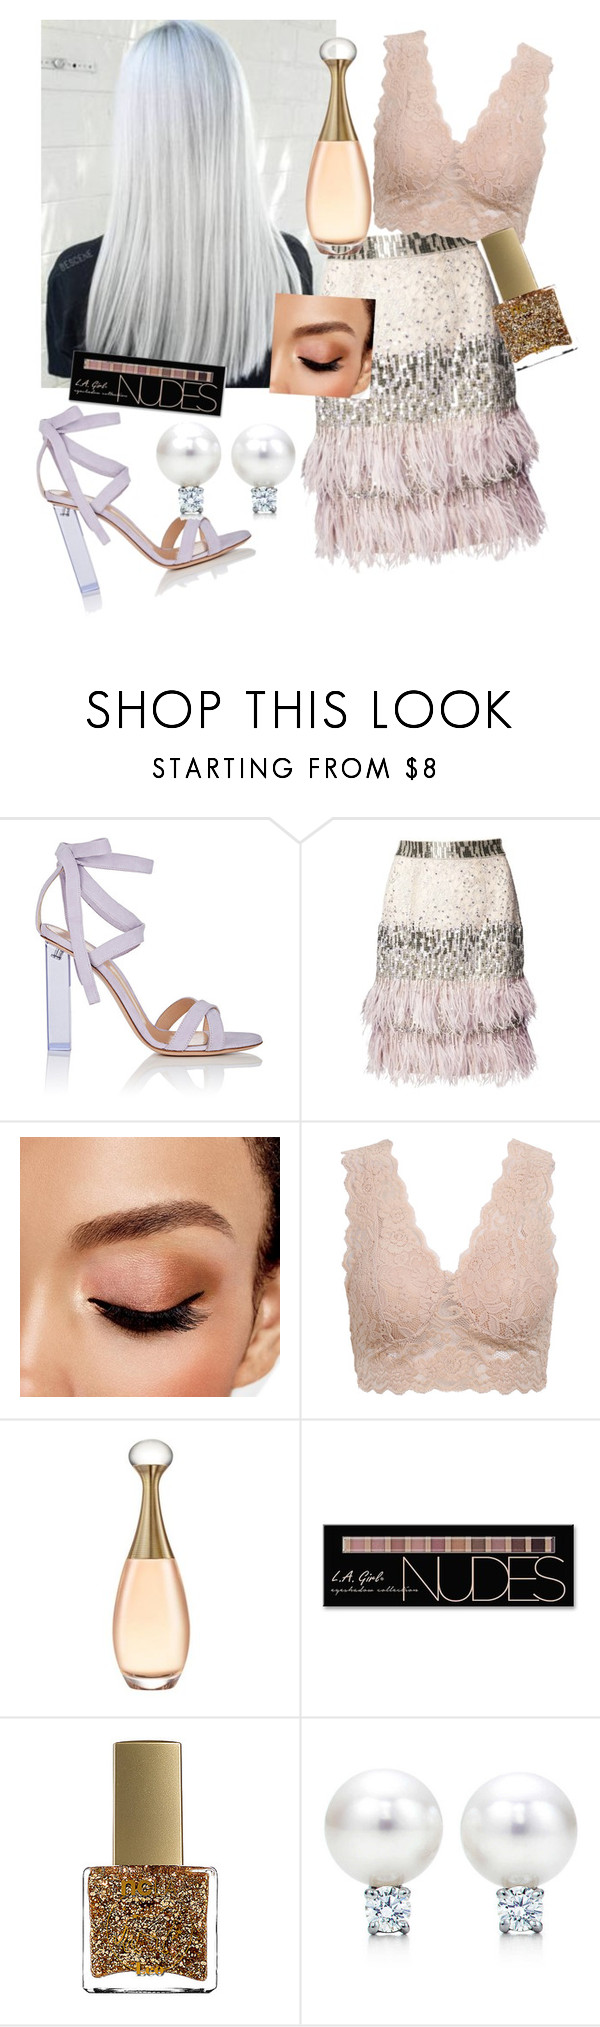 """""""original 👑💕"""" by mgldemartino ❤ liked on Polyvore featuring Gianvito Rossi, Matthew Williamson, Avon, Charlotte Russe and ncLA"""